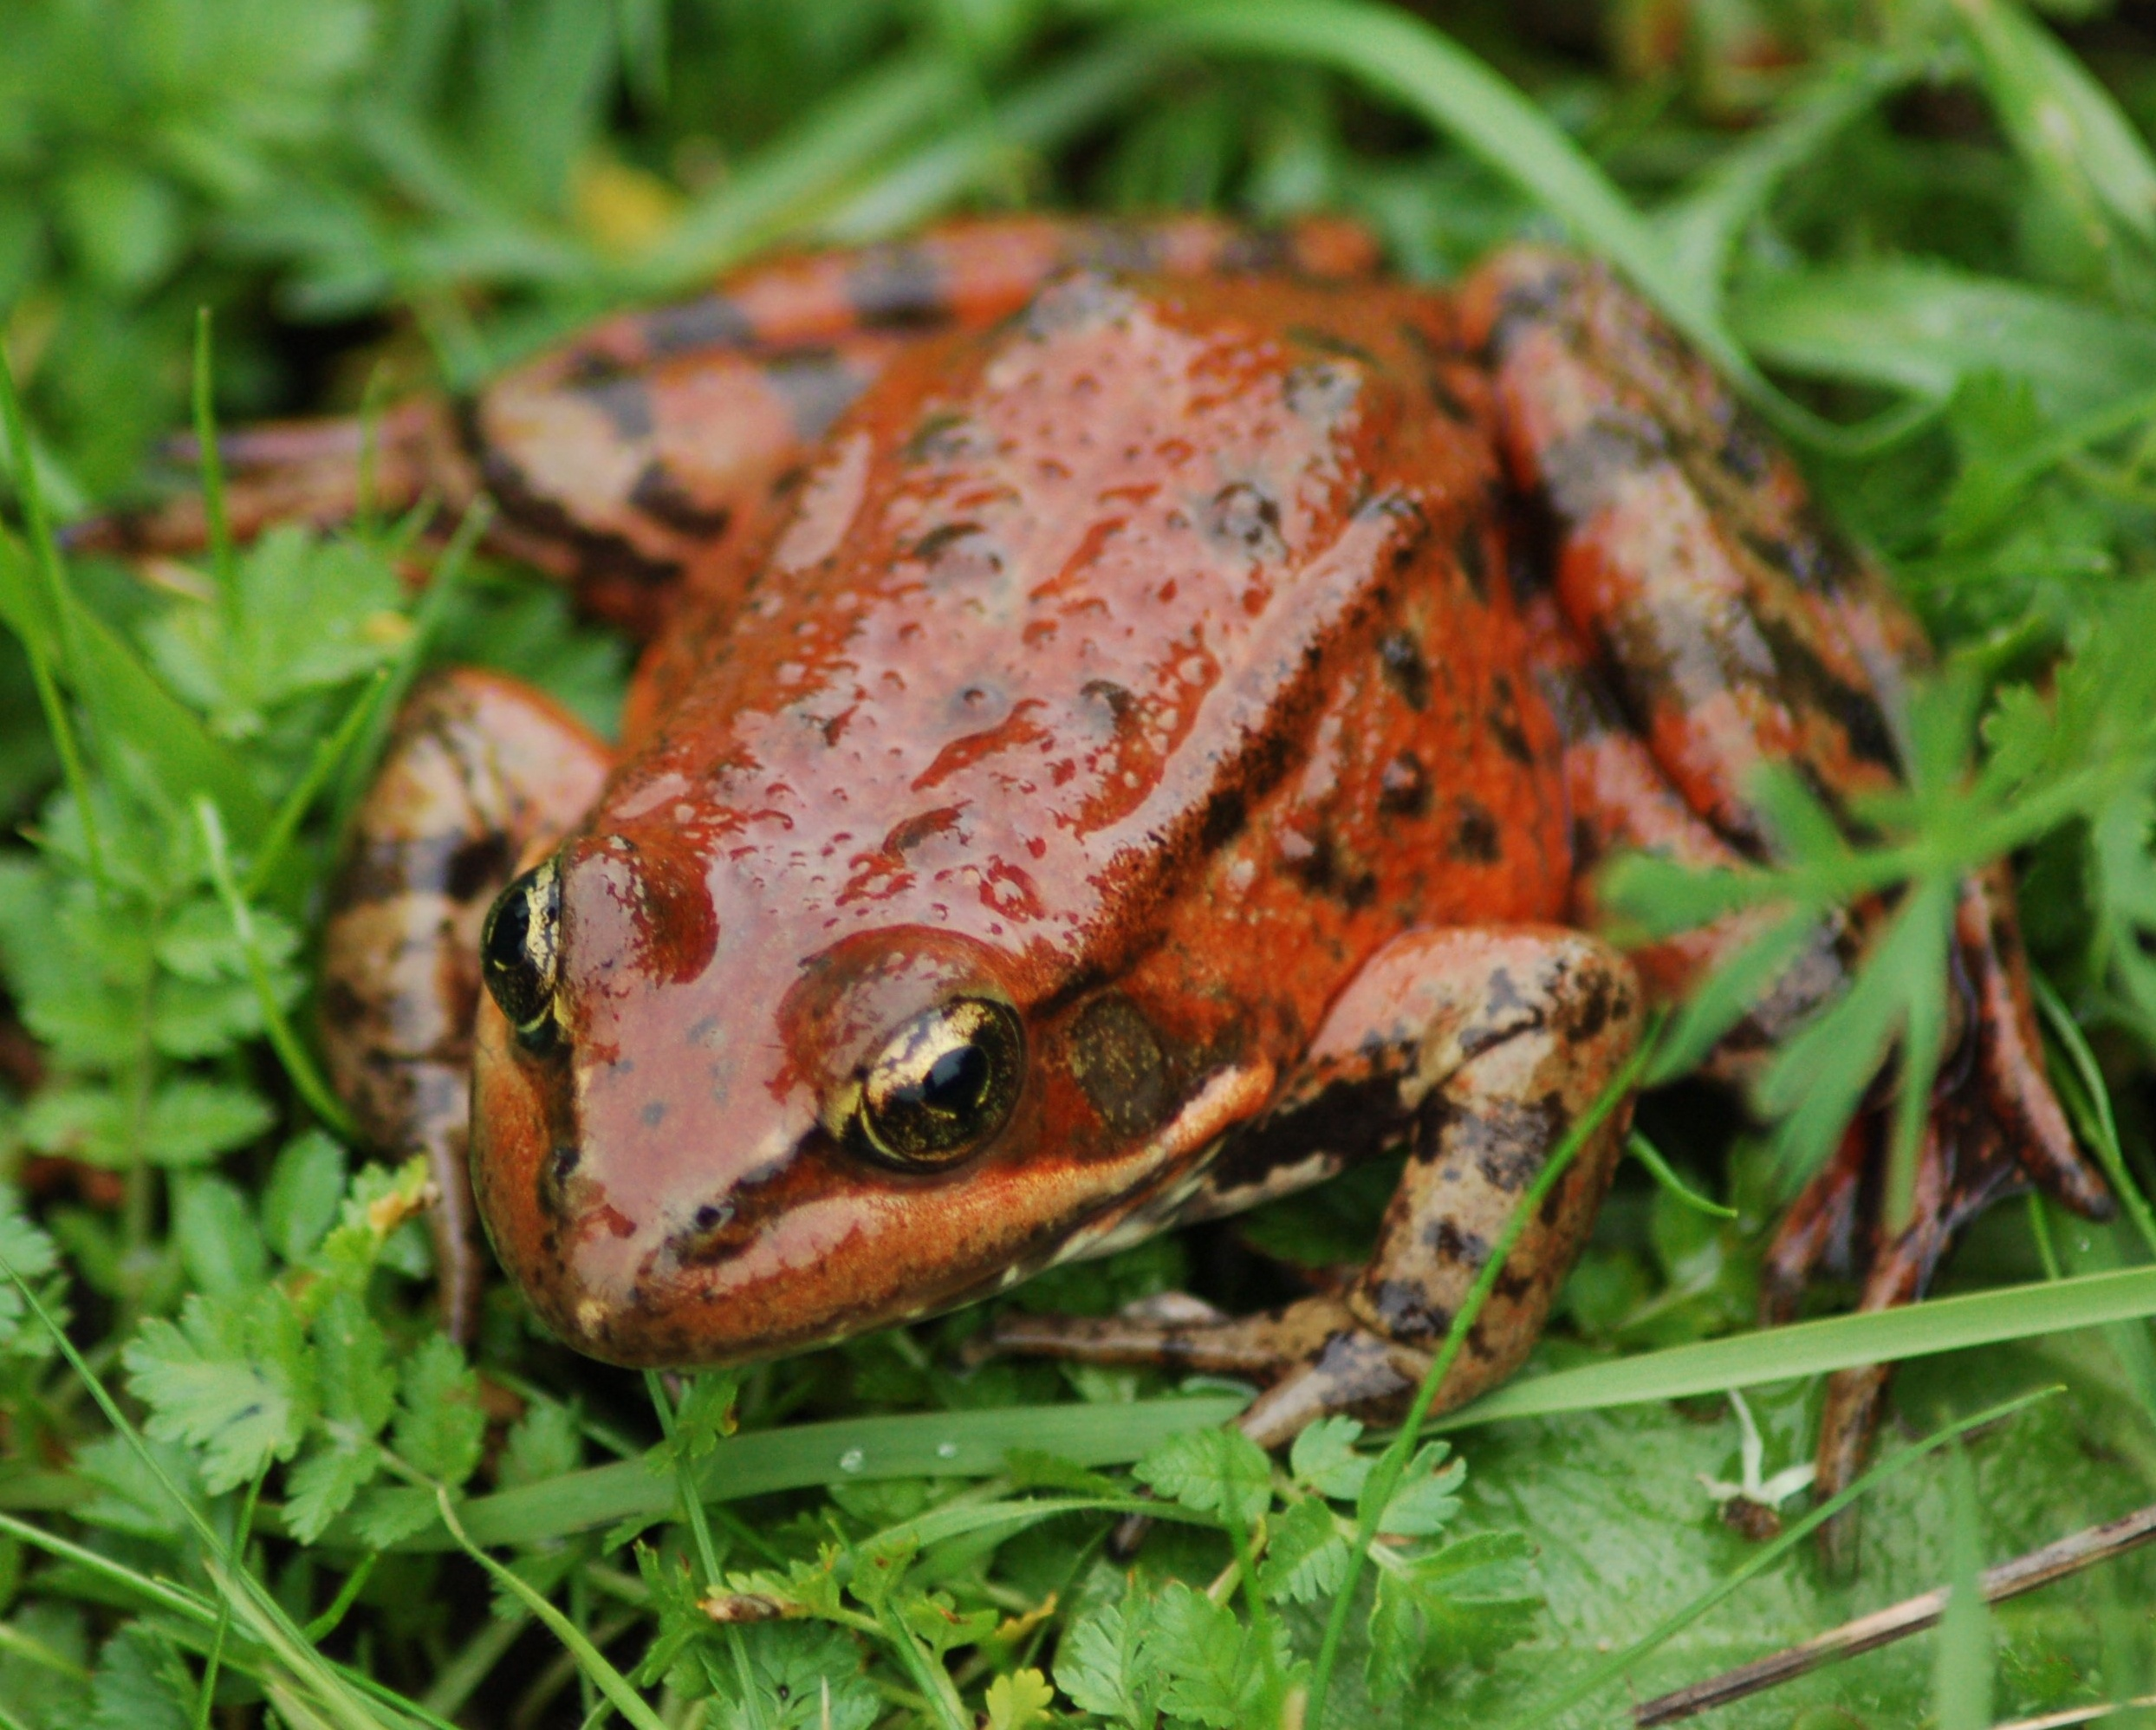 Rana-Draytonii-California-Red-legged-Frog-456954-edited